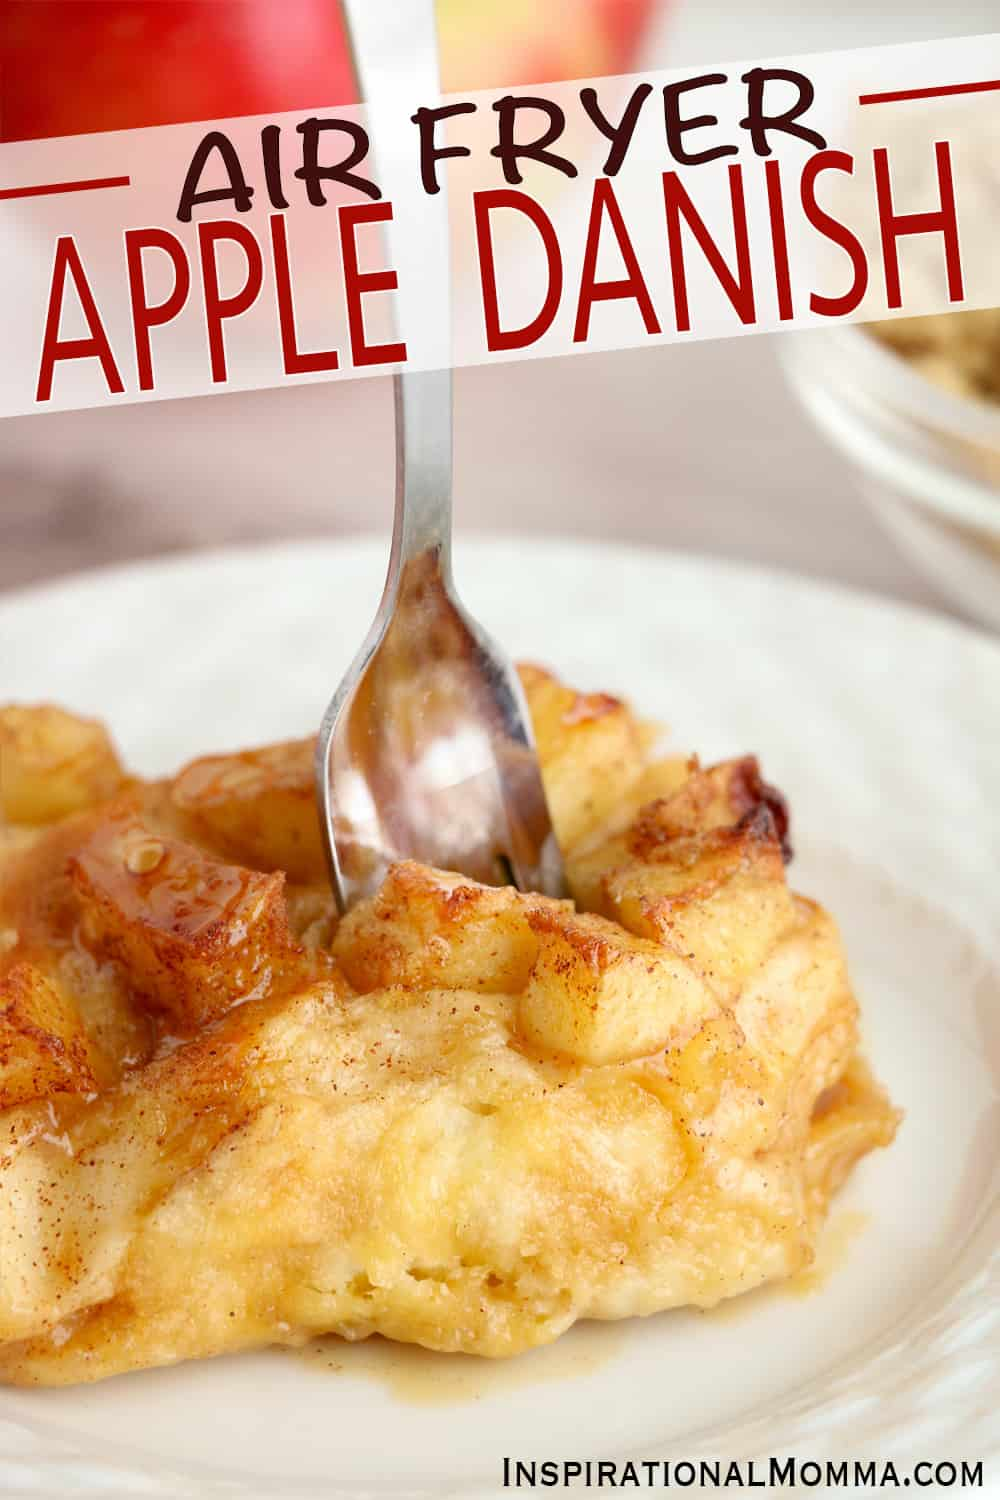 An Air Fryer Apple Danish made quickly with biscuits and fresh apples covered in sweetness. Prepped in 5 minutes, it is a perfect dessert! #inspirationalmomma #airfryerappledanish #airfryerappledesserts #airfryerapplerecipes #airfryerdesserts #airfryerrecipes #appledanish